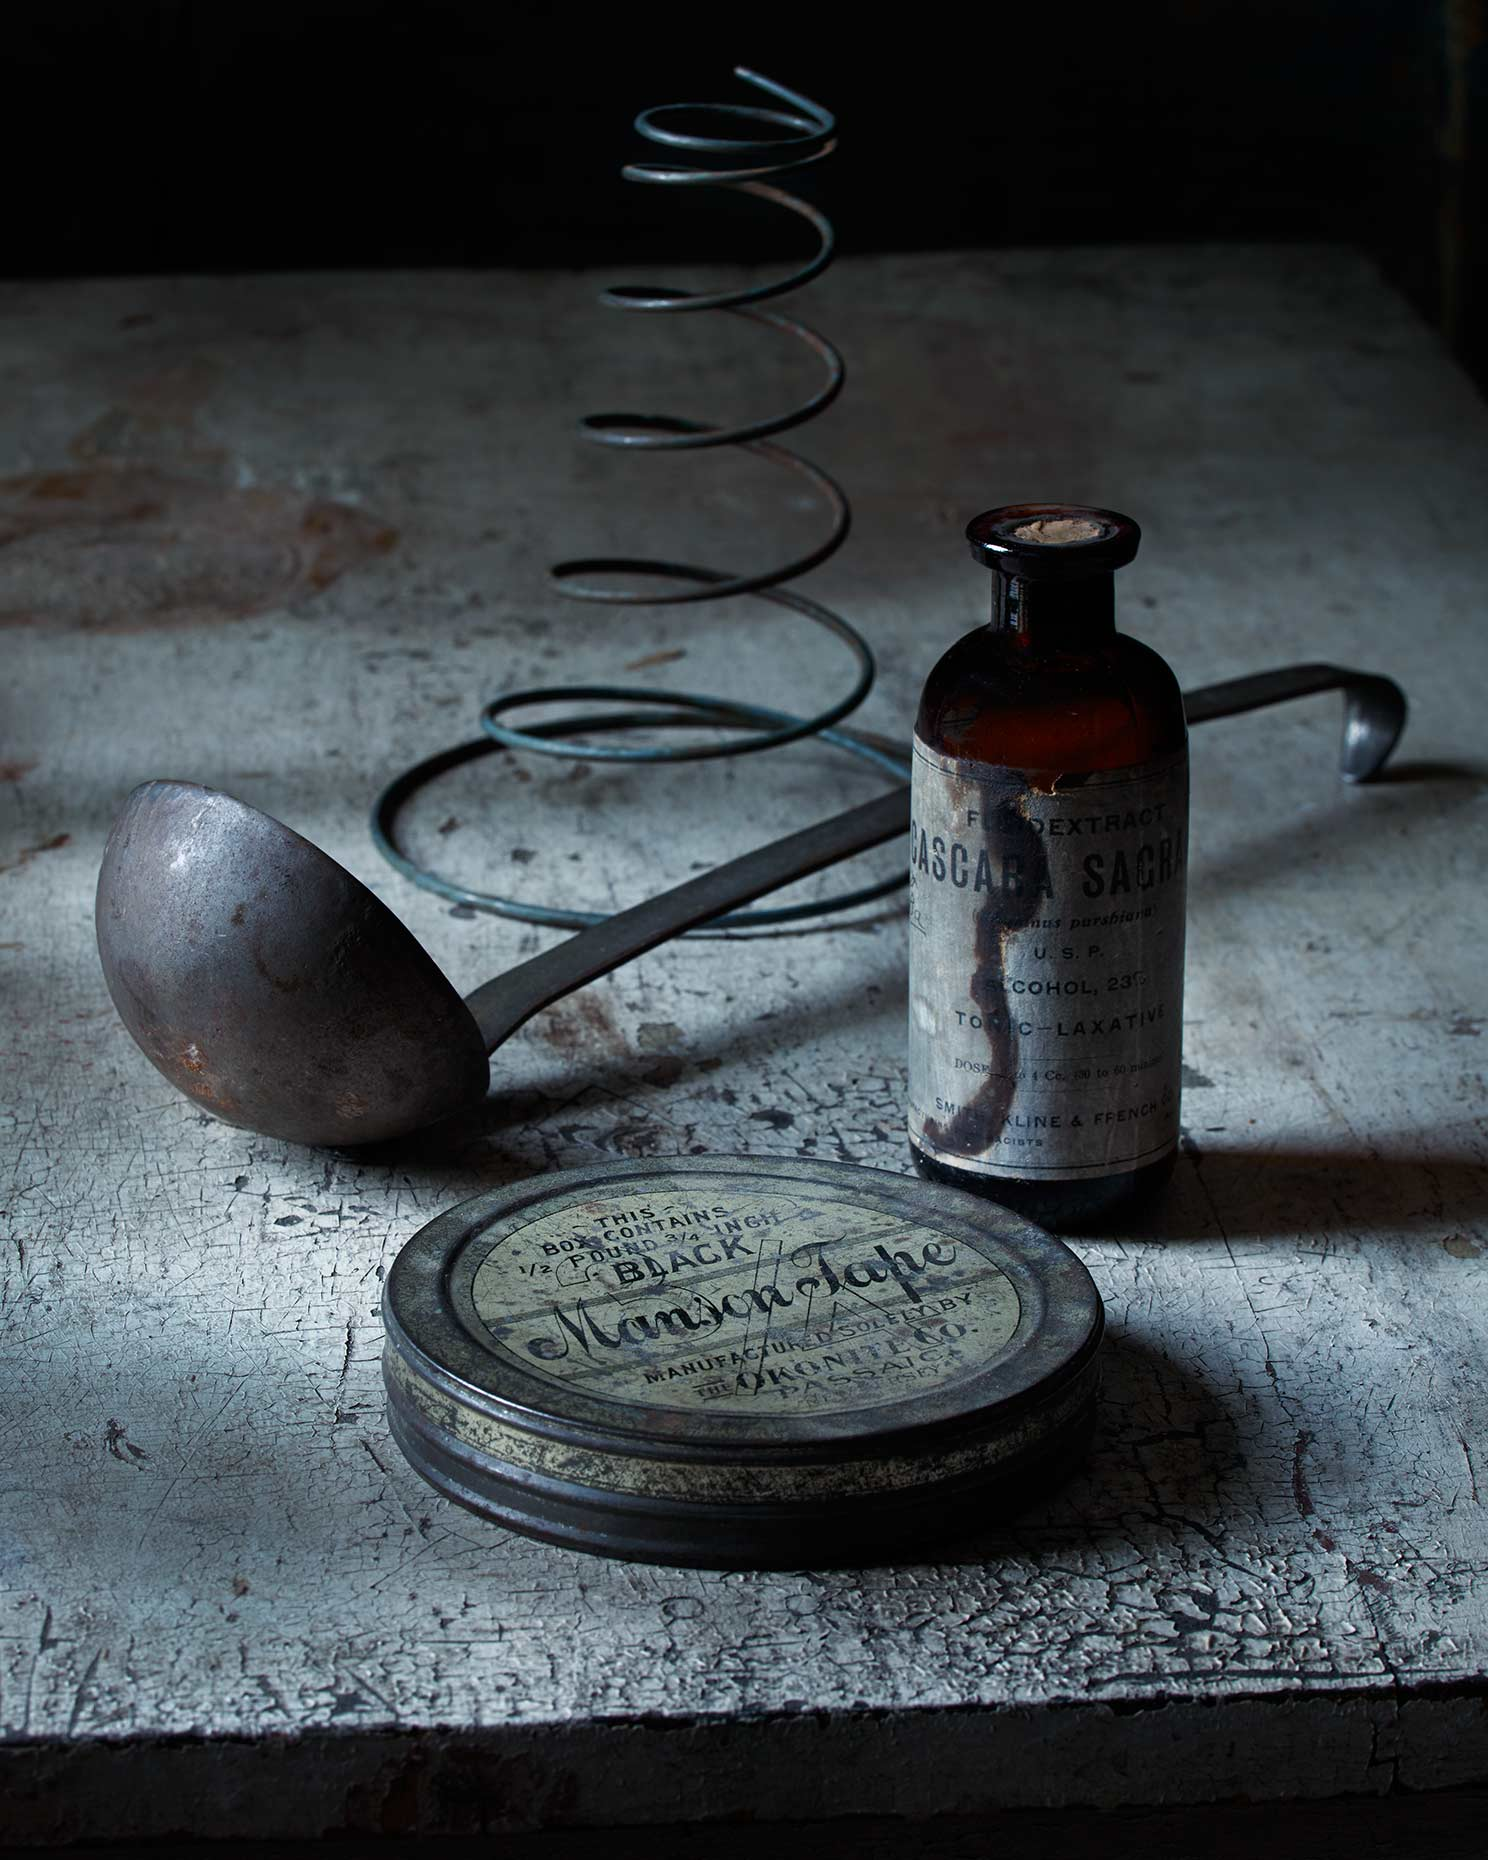 Classic still life composition with various vintage objects